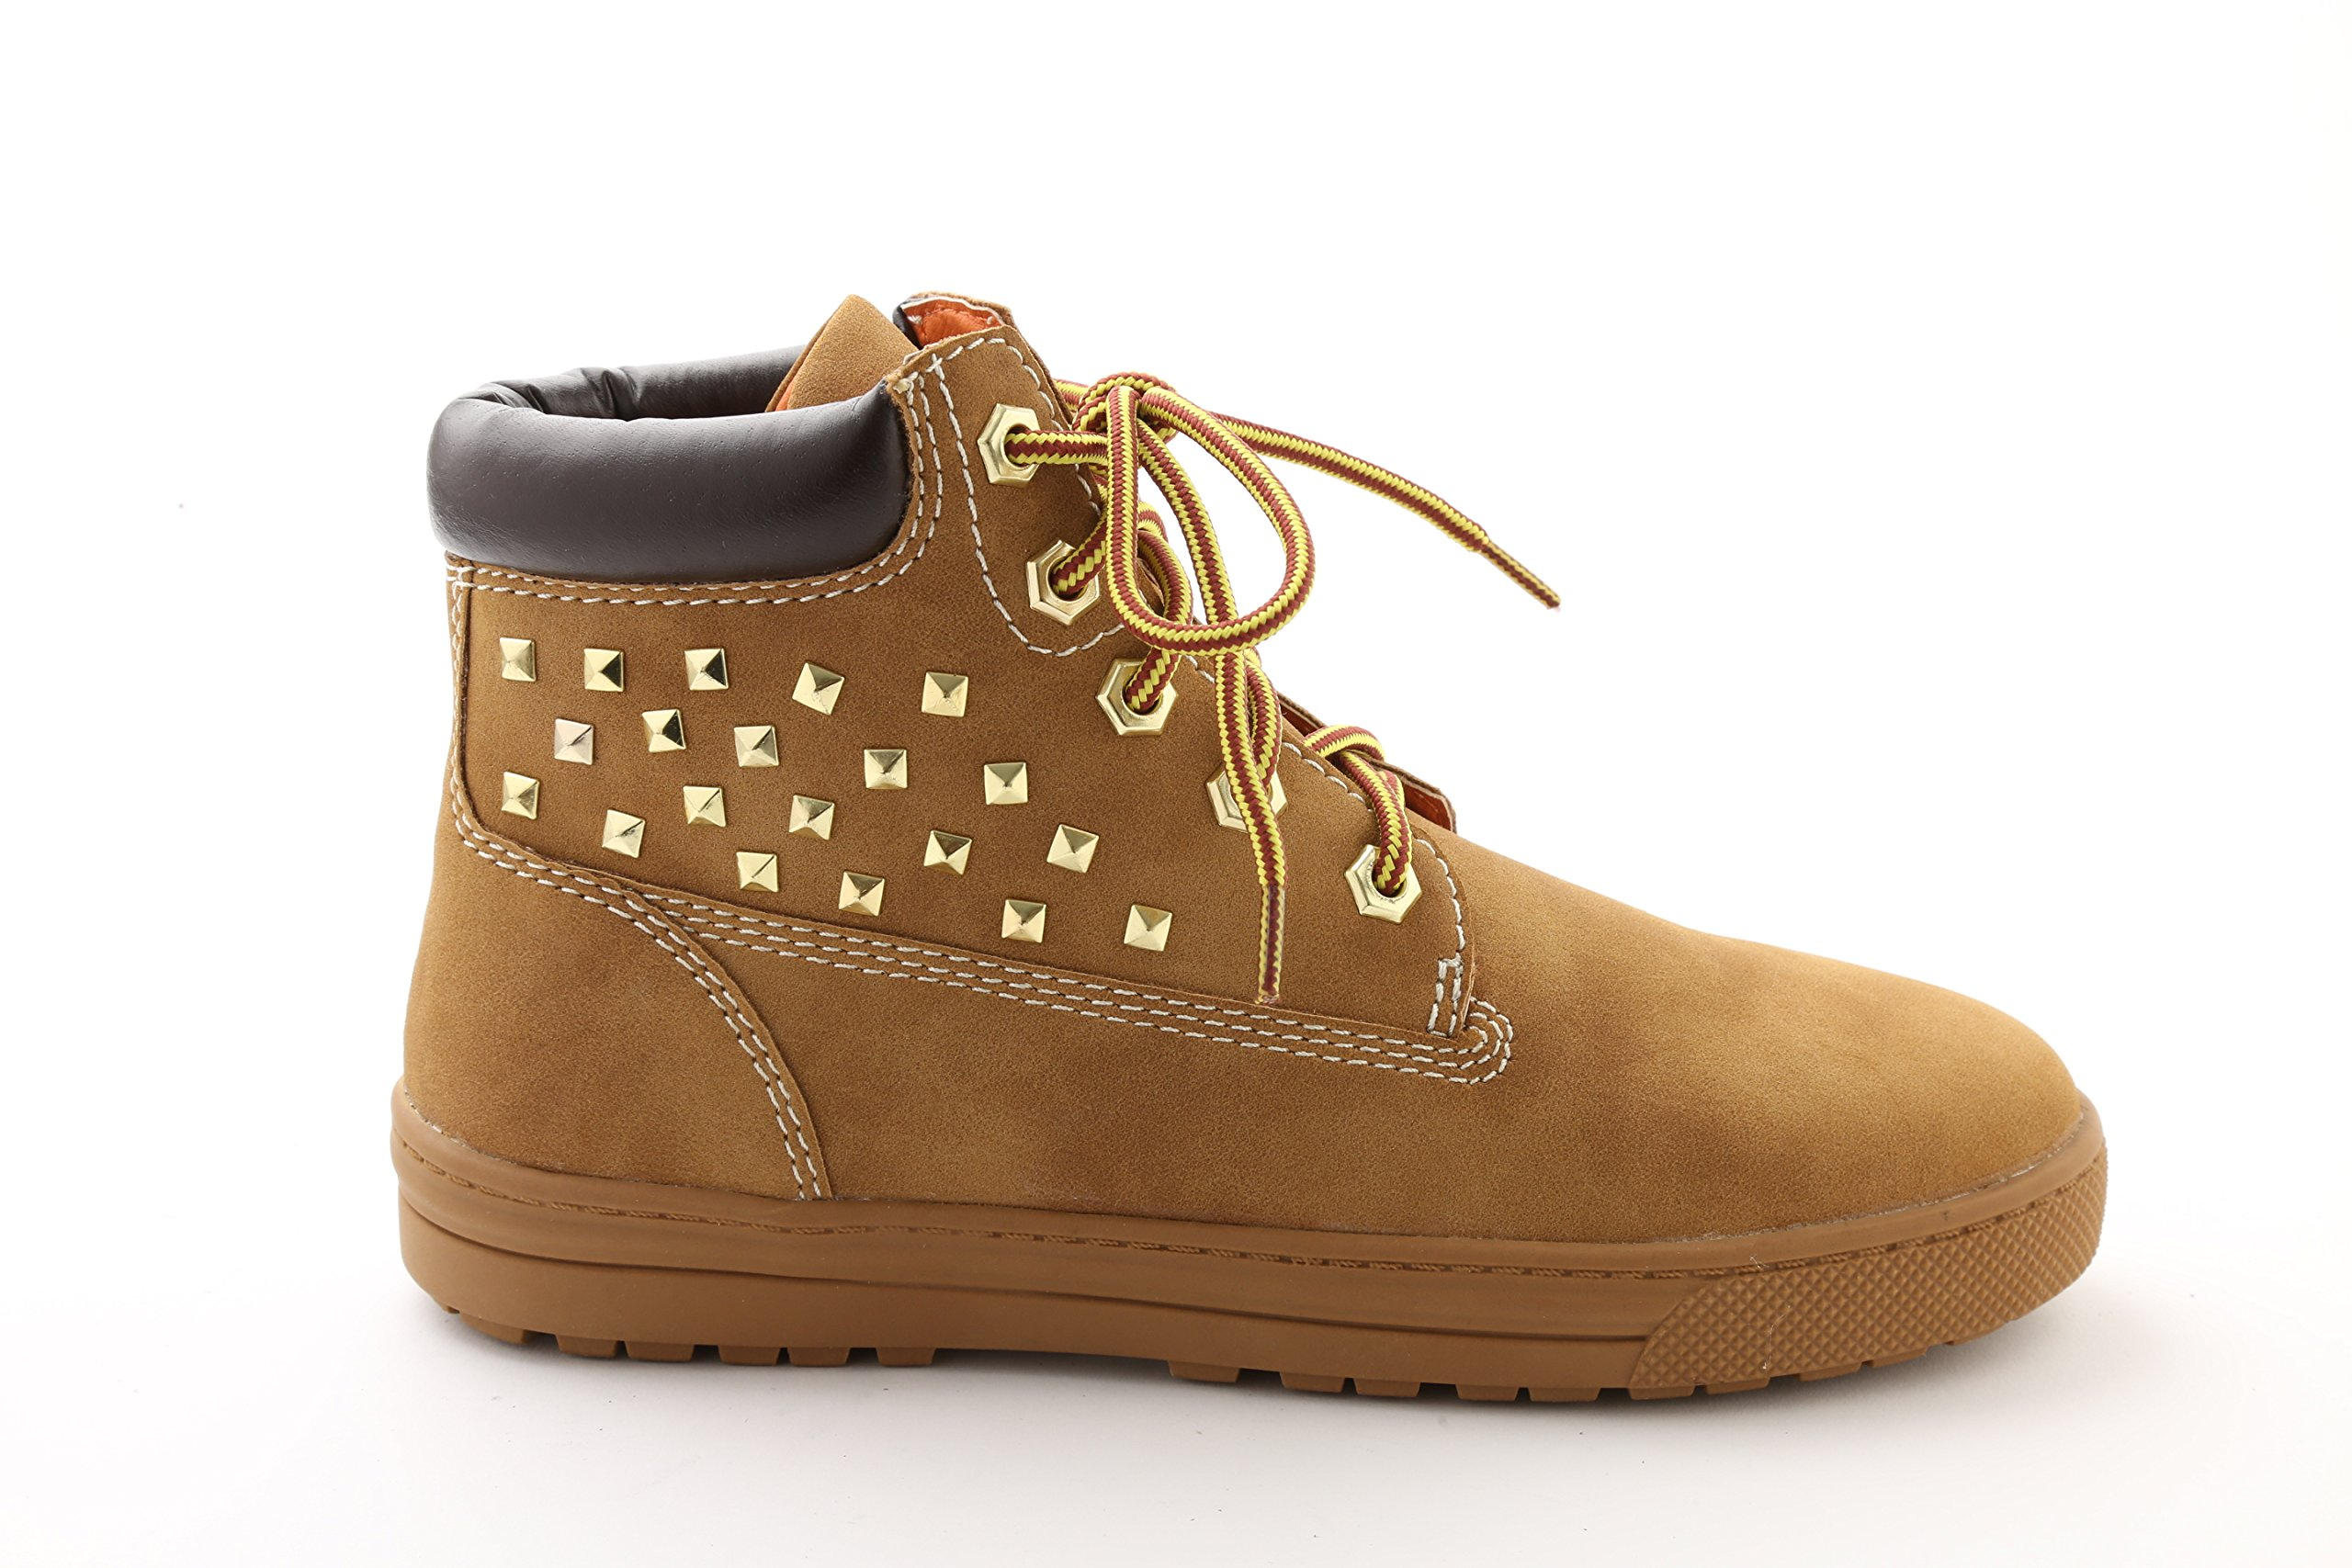 Pastry Adult Butter Boot Dance Sneaker, Wheat, Size 5.5